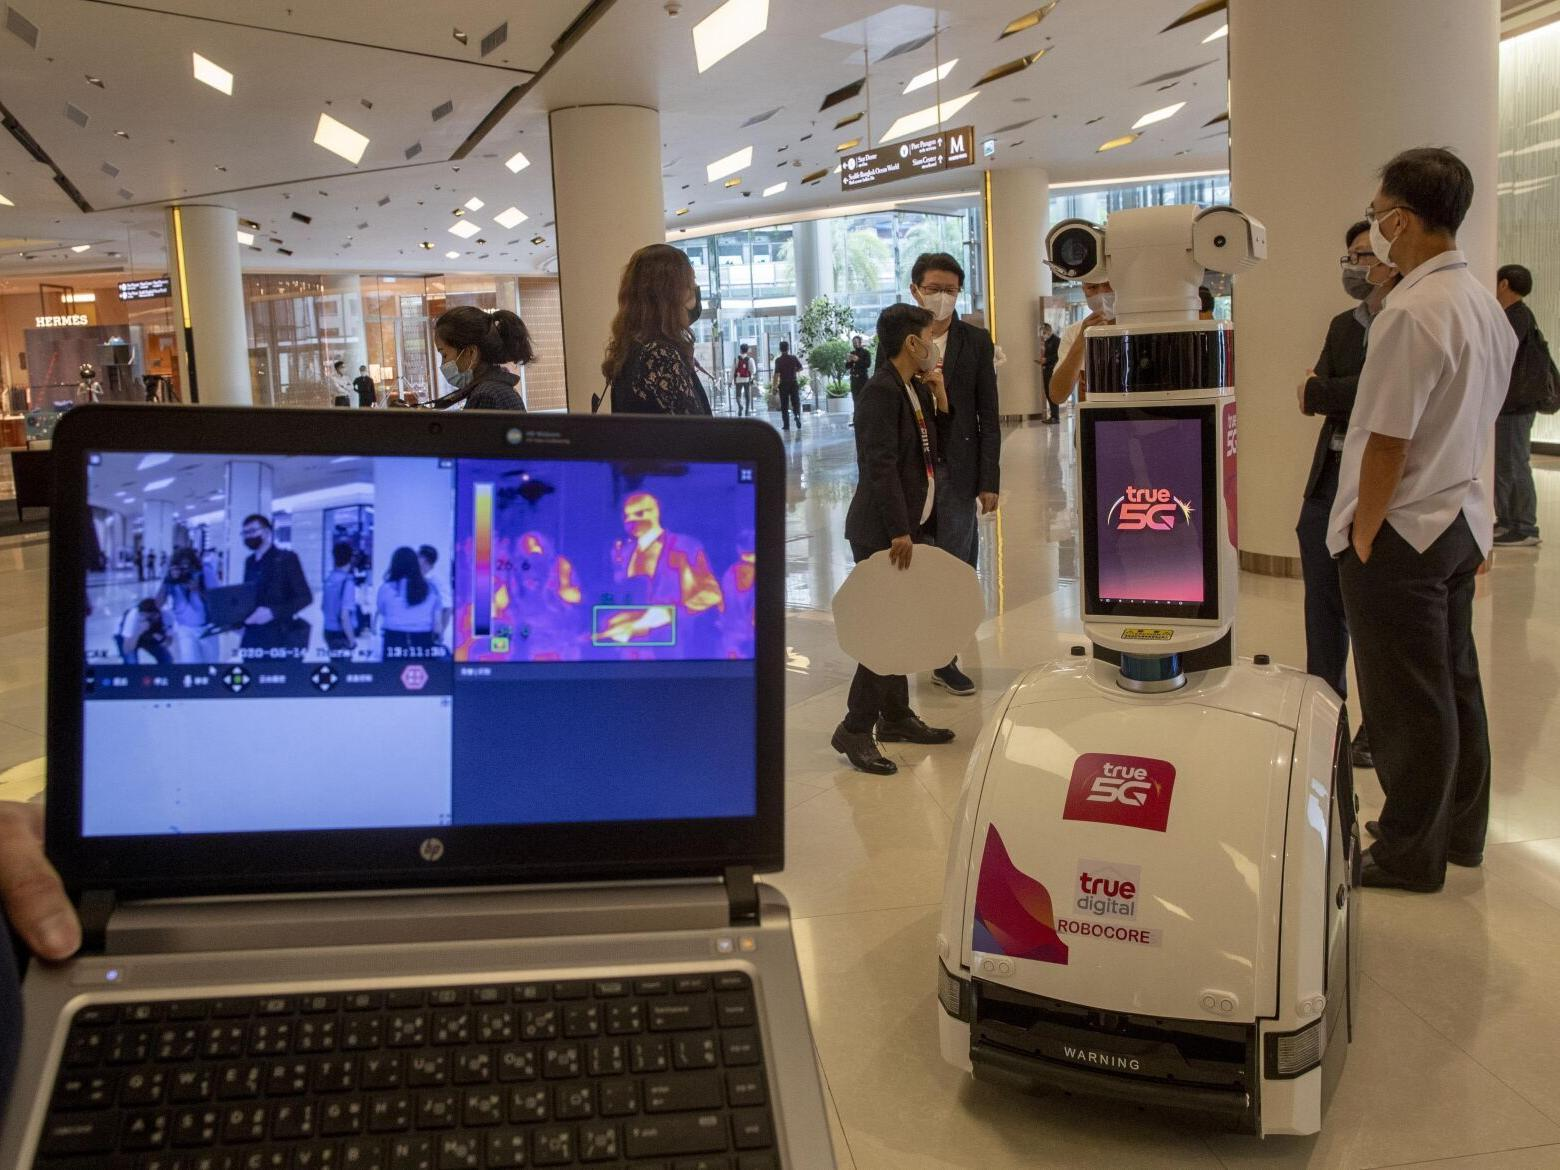 Robot use on the rise during pandemic, experts say   Technology ...